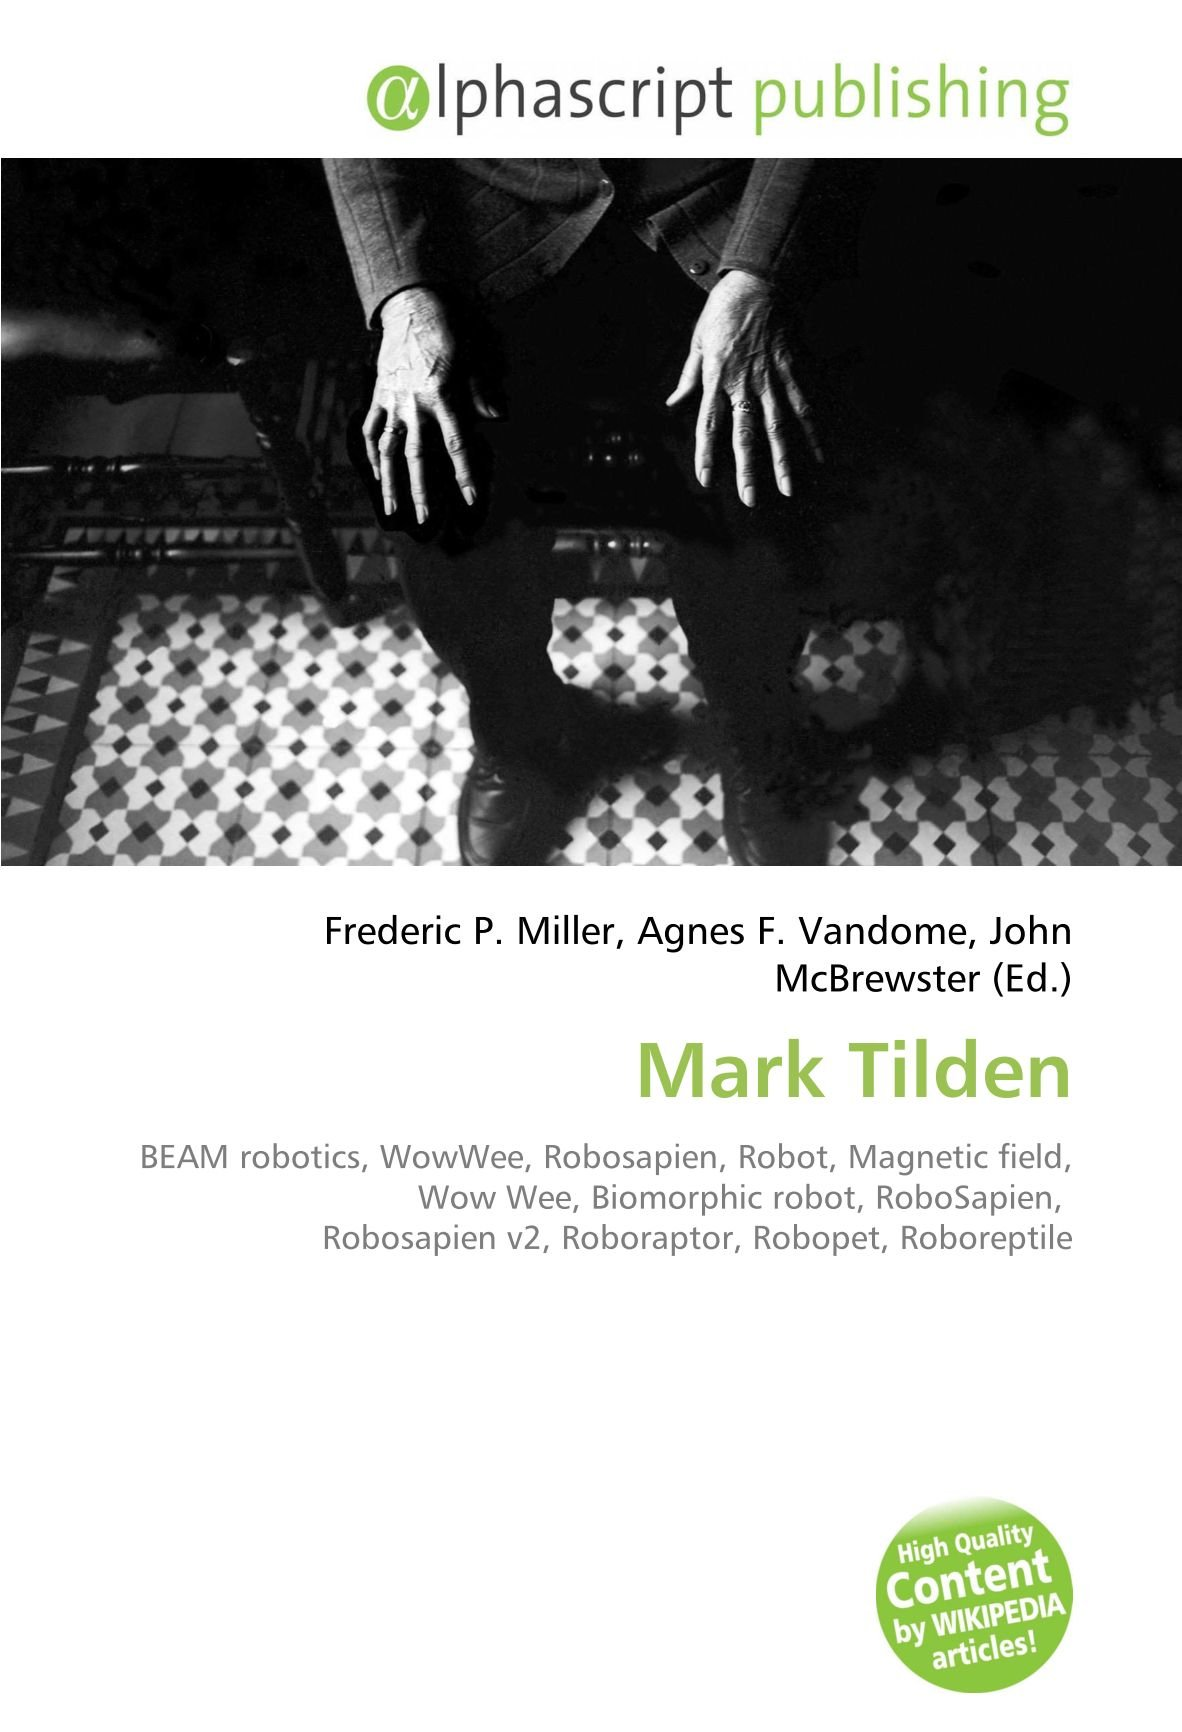 Mark Tilden: BEAM robotics, WowWee, Robosapien, Robot, Magnetic field, Wow Wee, Biomorphic robot, RoboSapien, Robosapien v2, Roboraptor, Robopet, Roboreptile: Amazon.es: Miller, Frederic P., Vandome, Agnes F., McBrewster, John: Libros en idiomas ...